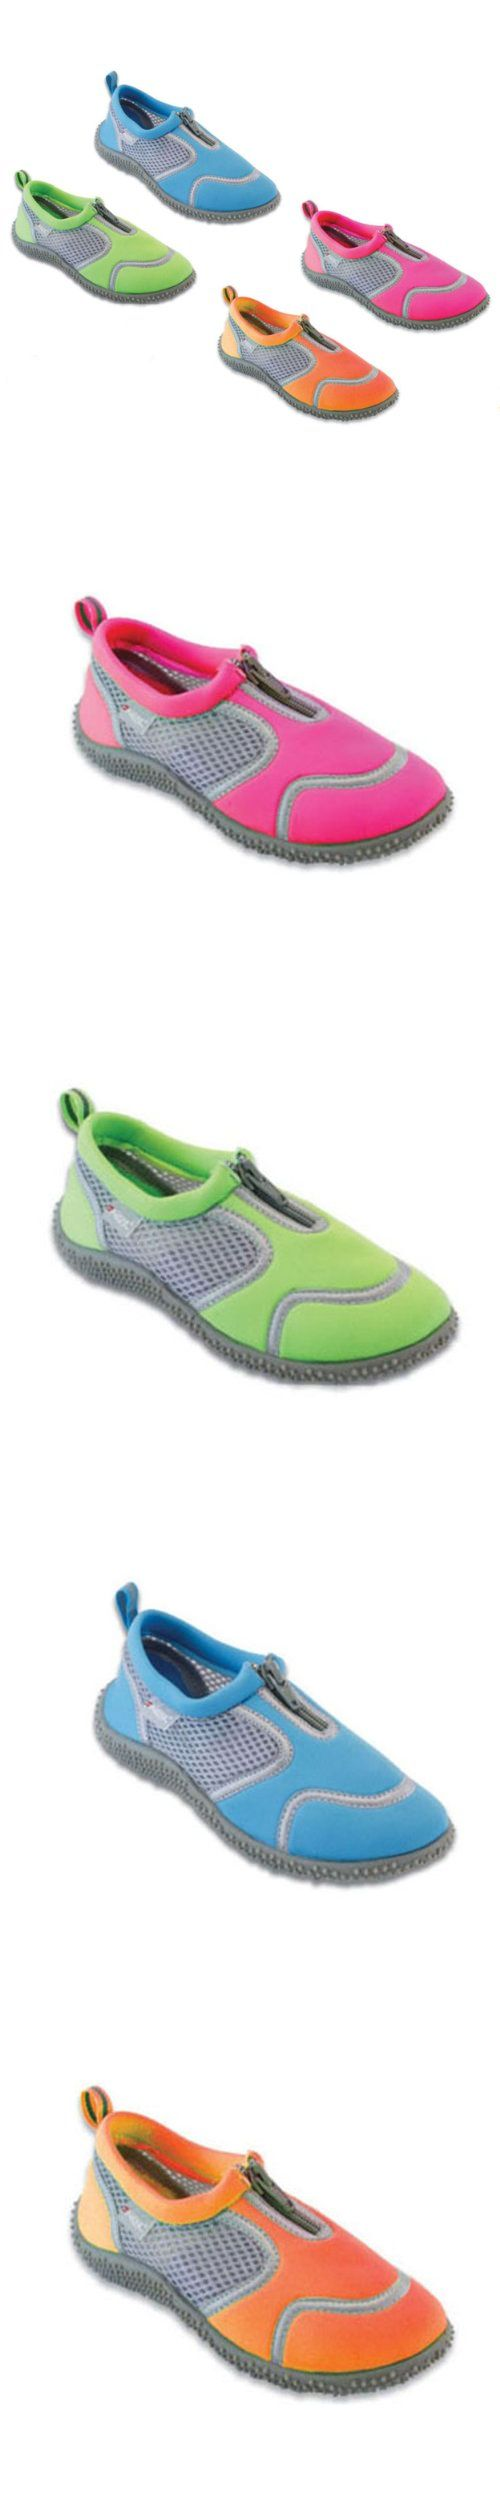 Frisky Zip-Up Toddler Girls Water Shoes Aqua Socks 5-10 - These Frisky water shoes are perfect for active water sports or just wading in the surf. Constructed from quality synthetic material and natural rubber, the uppers feature a pull tab on the back and z... - Water Shoes - Apparel -